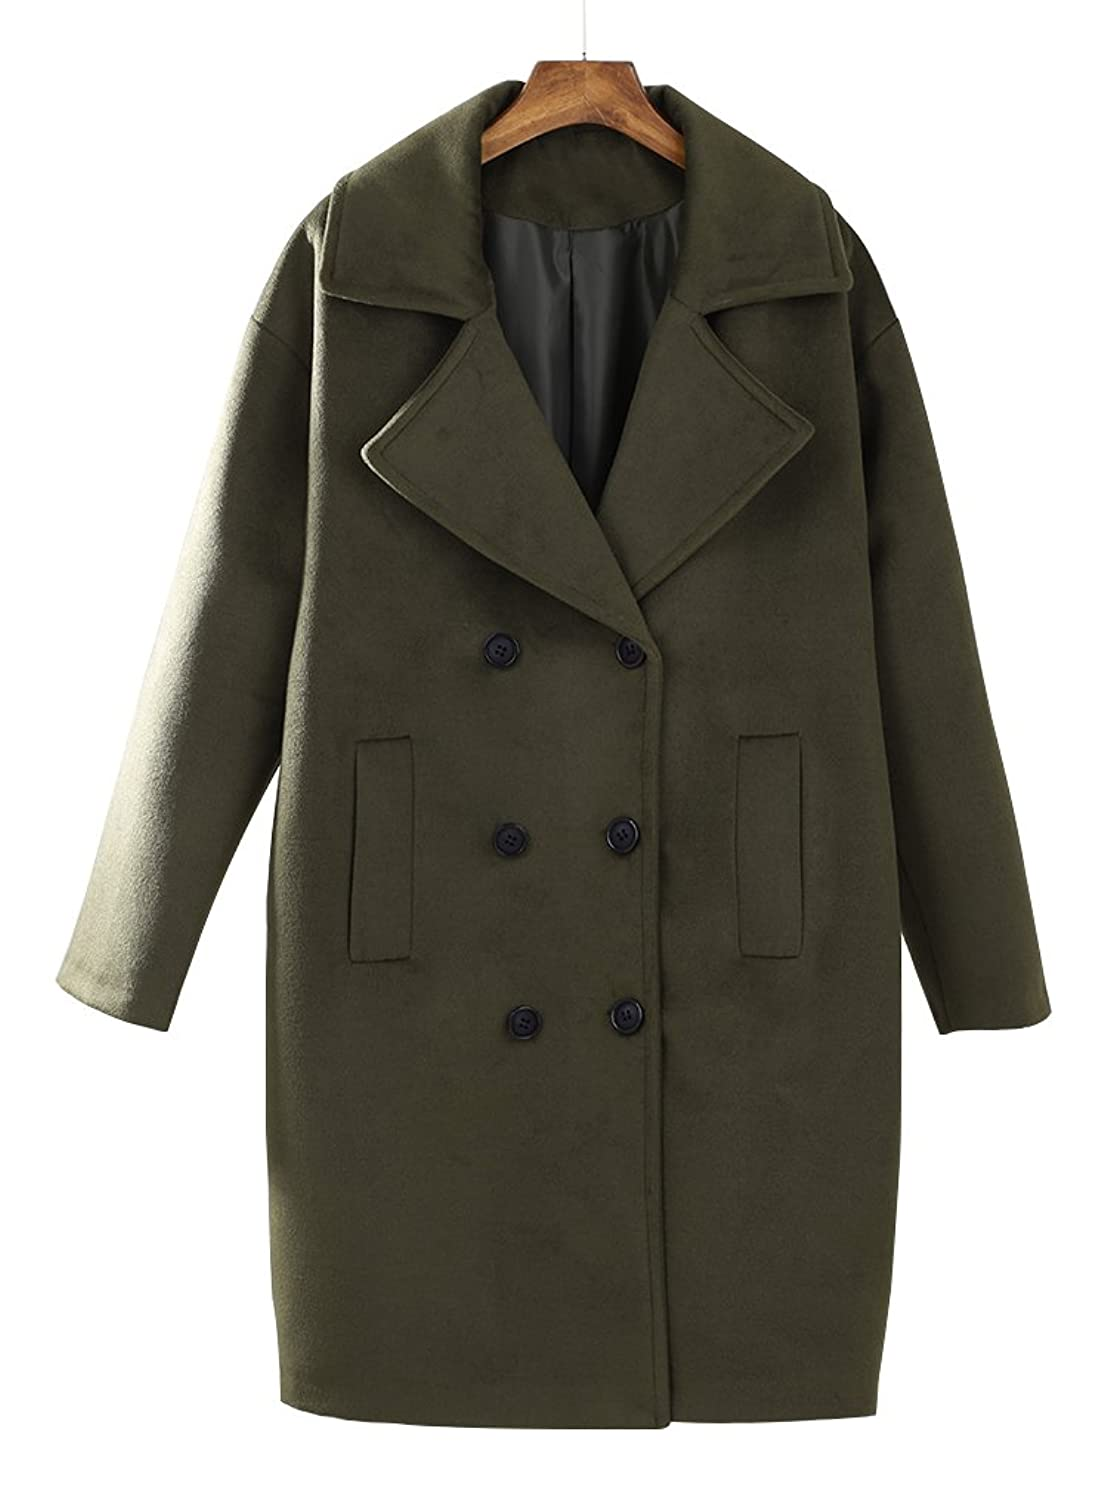 Women's Retro Army Green Autumn Wool Blend Coat with Double Breasted